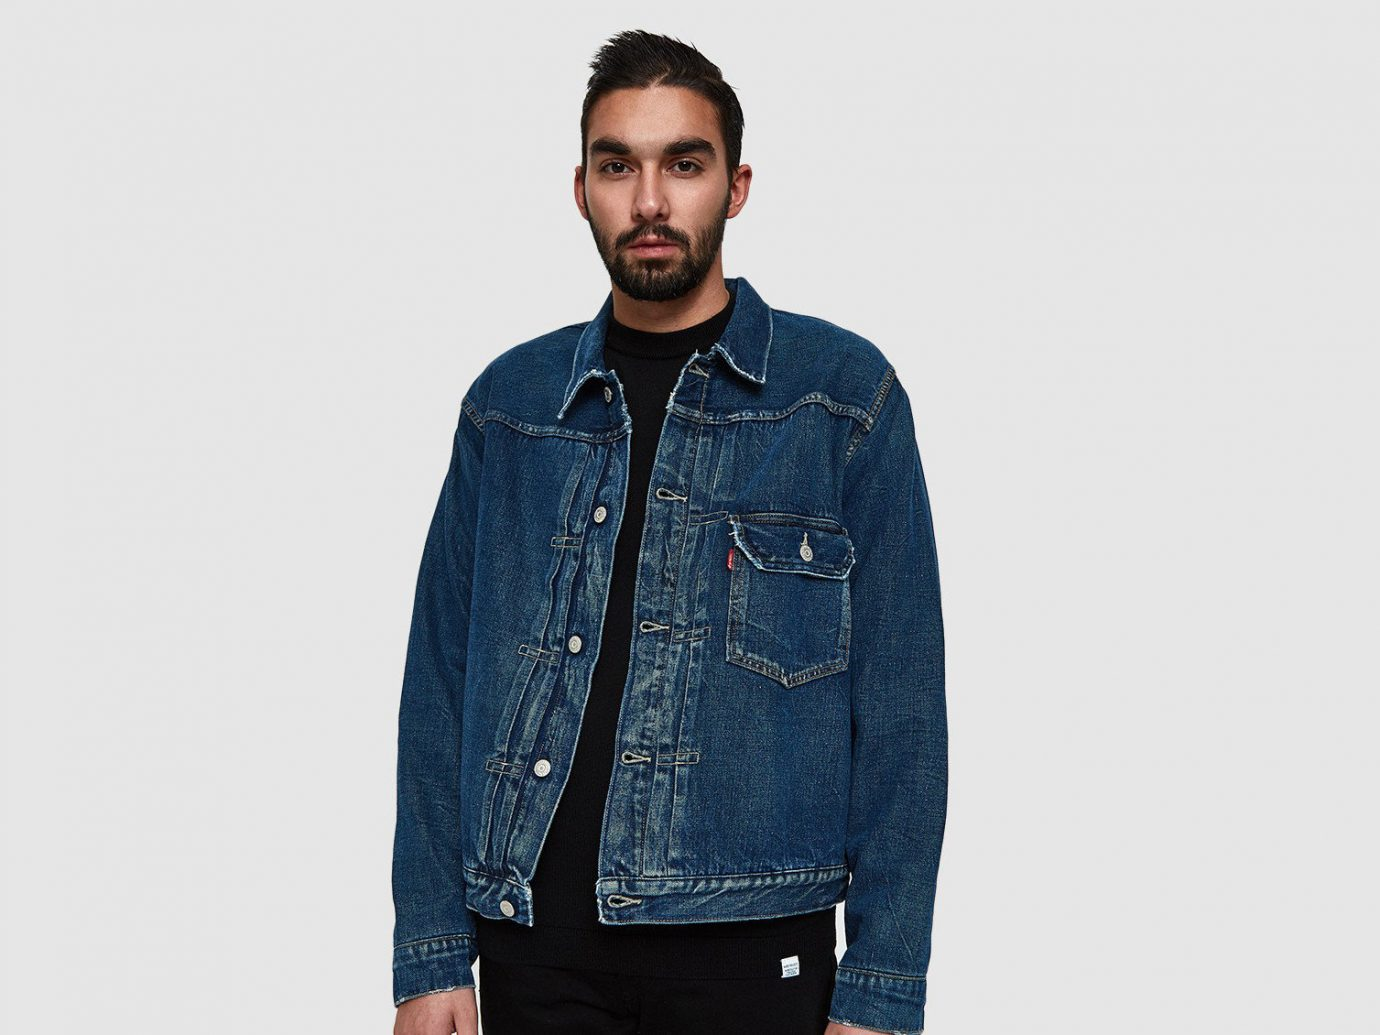 b9e8cdc1f33c6b Style + Design Travel Shop person denim standing jacket man jeans textile  outerwear sleeve material gentleman